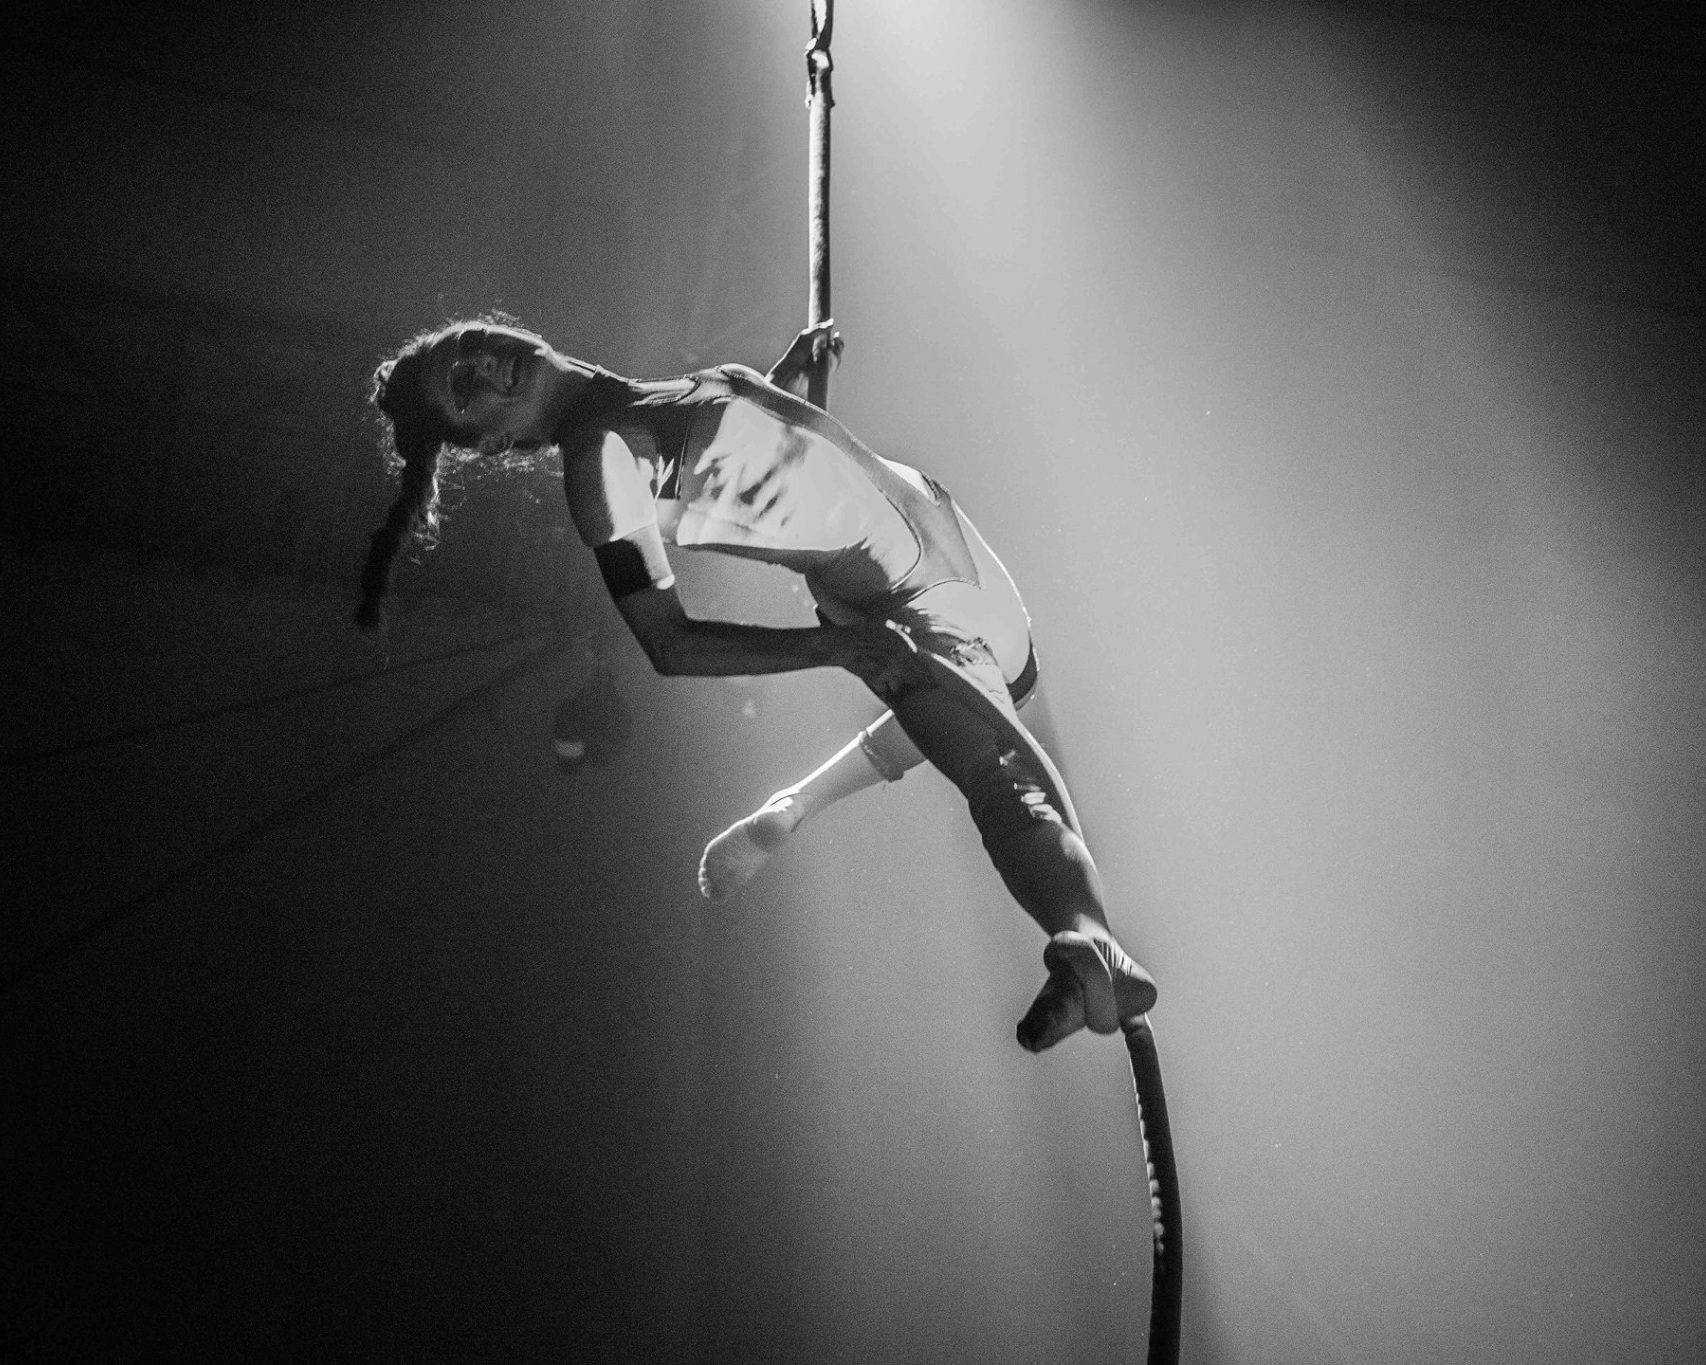 Claire Crook     is a high skill aerial performer and rigger, specialising in corde lisse, she also performs silks, static trapeze, aerial hoop, hula hoops and fire. Her background is in circus theatre and has worked internationally in contemporary circus, circus theatre, festivals, cabaret, corporate and community events.